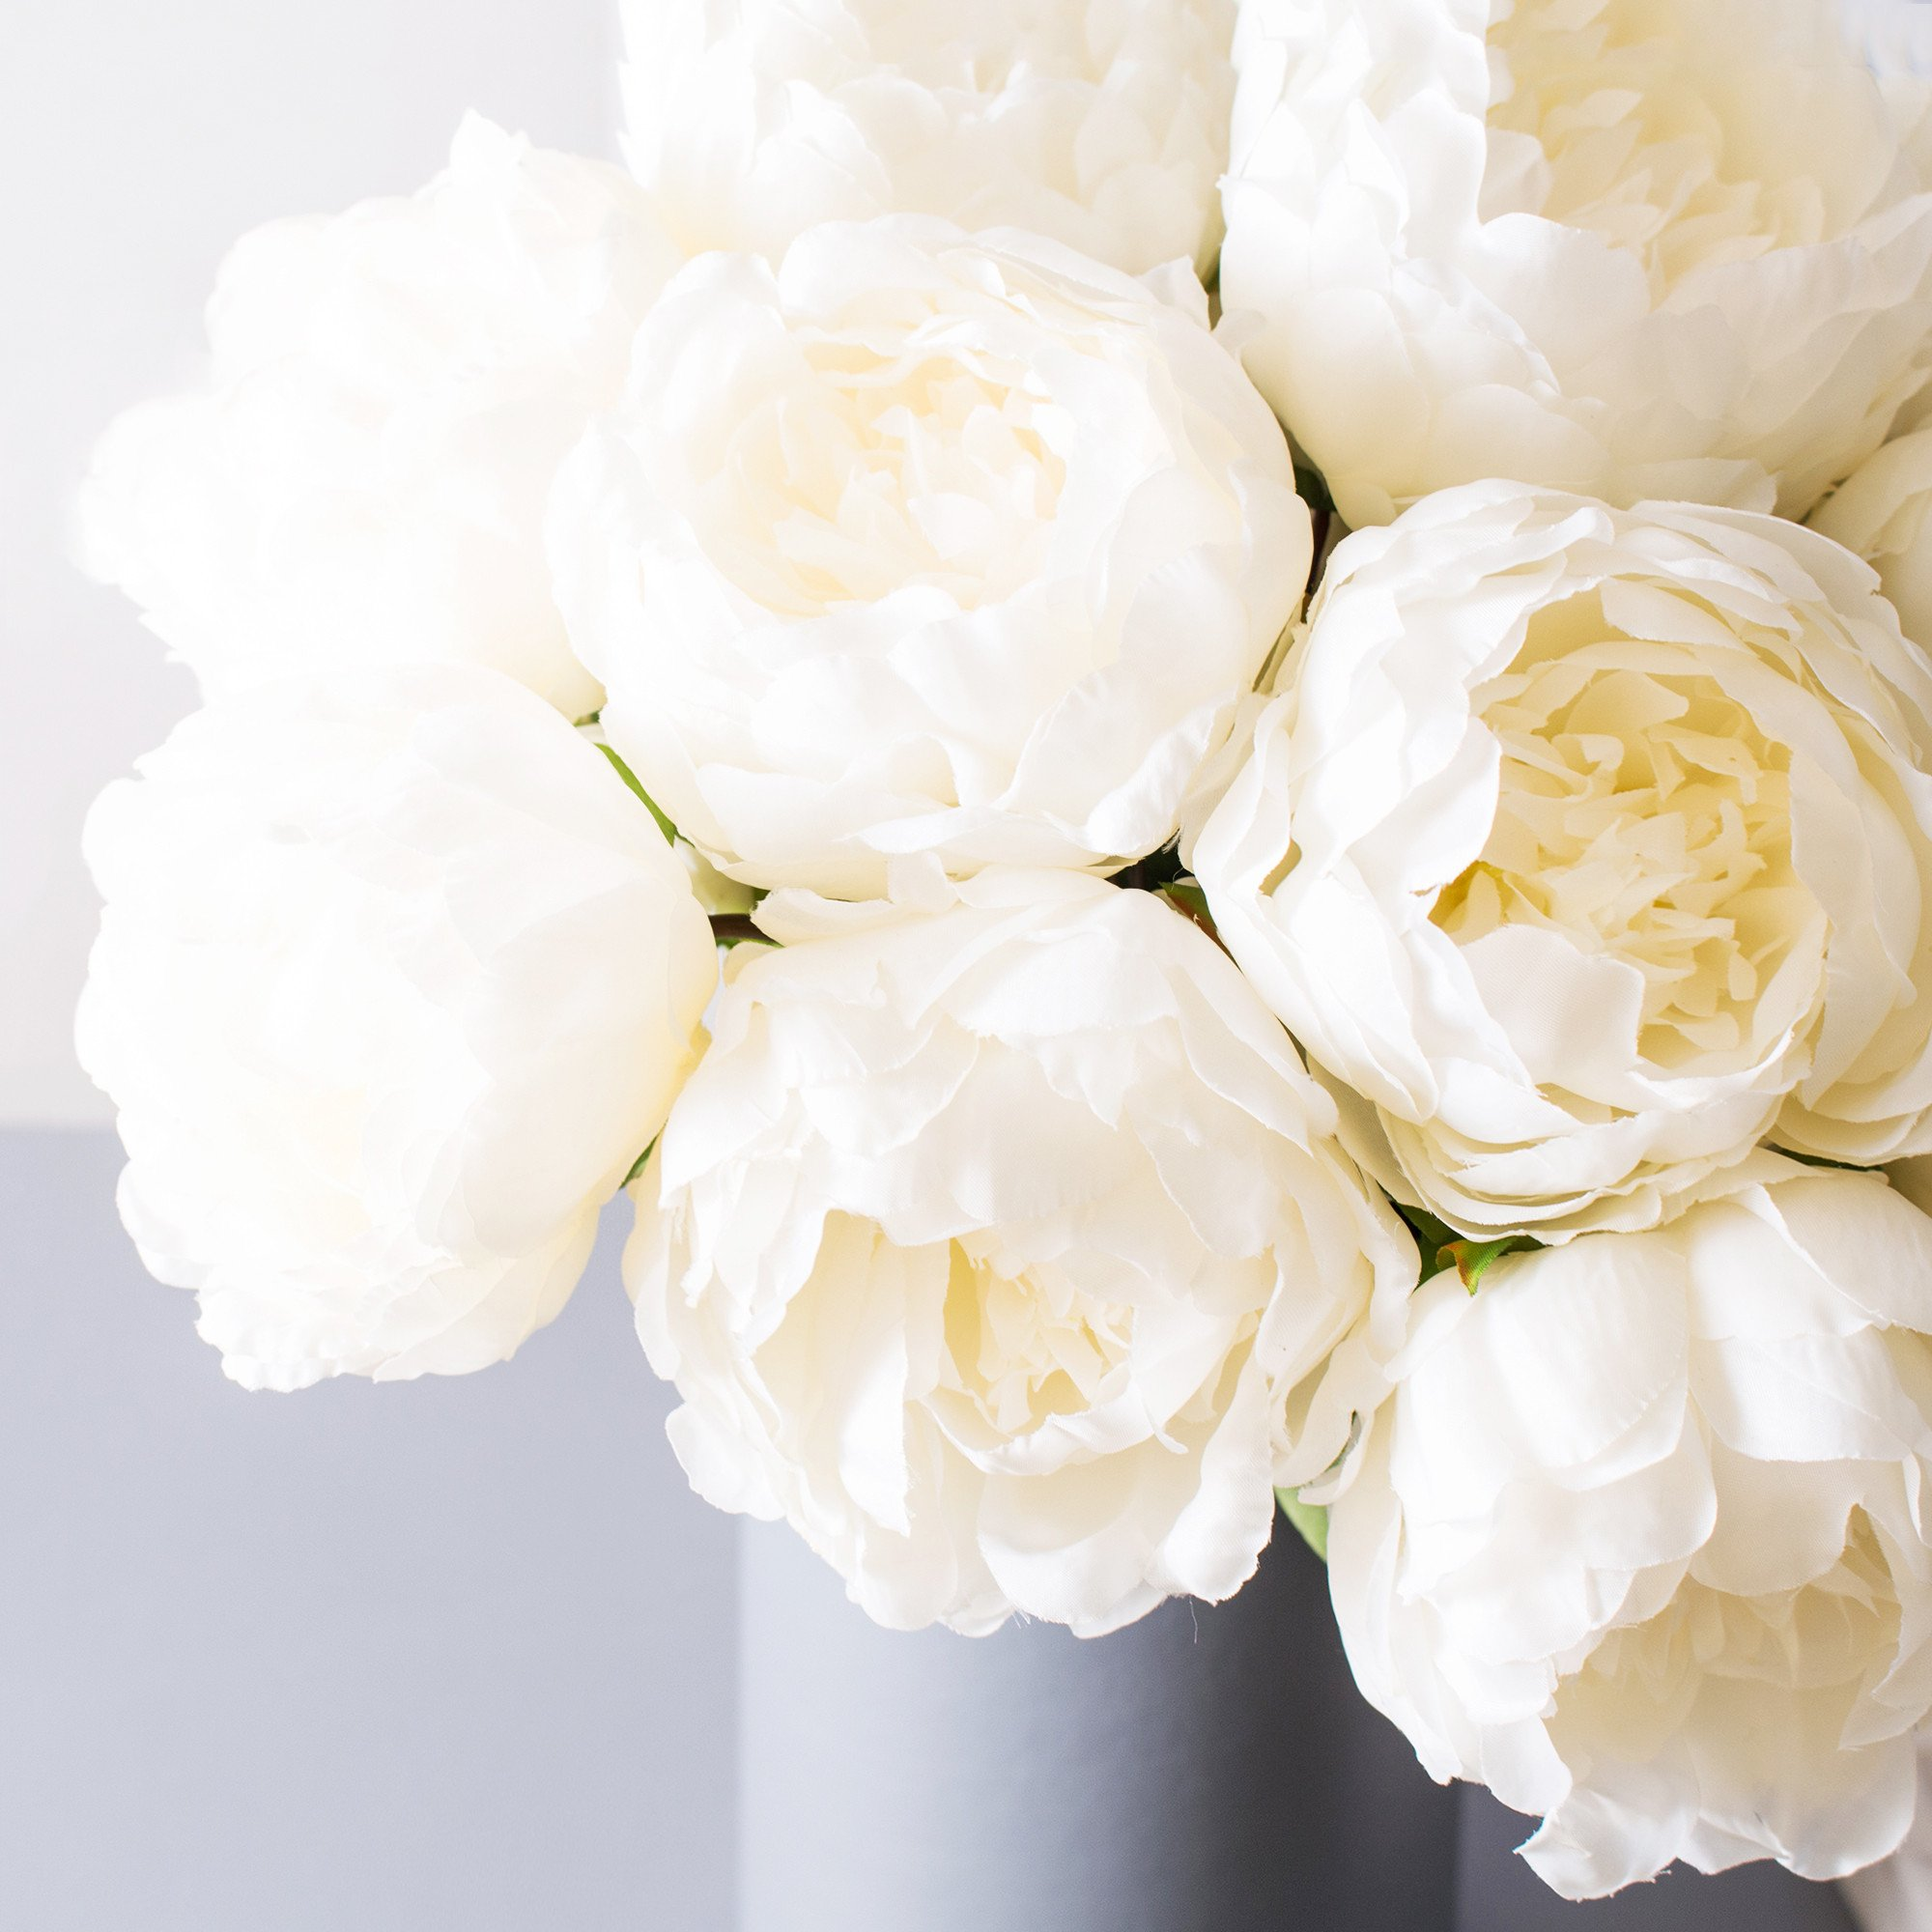 The Gentle World Of White Peony: 7 Remarkable Uses